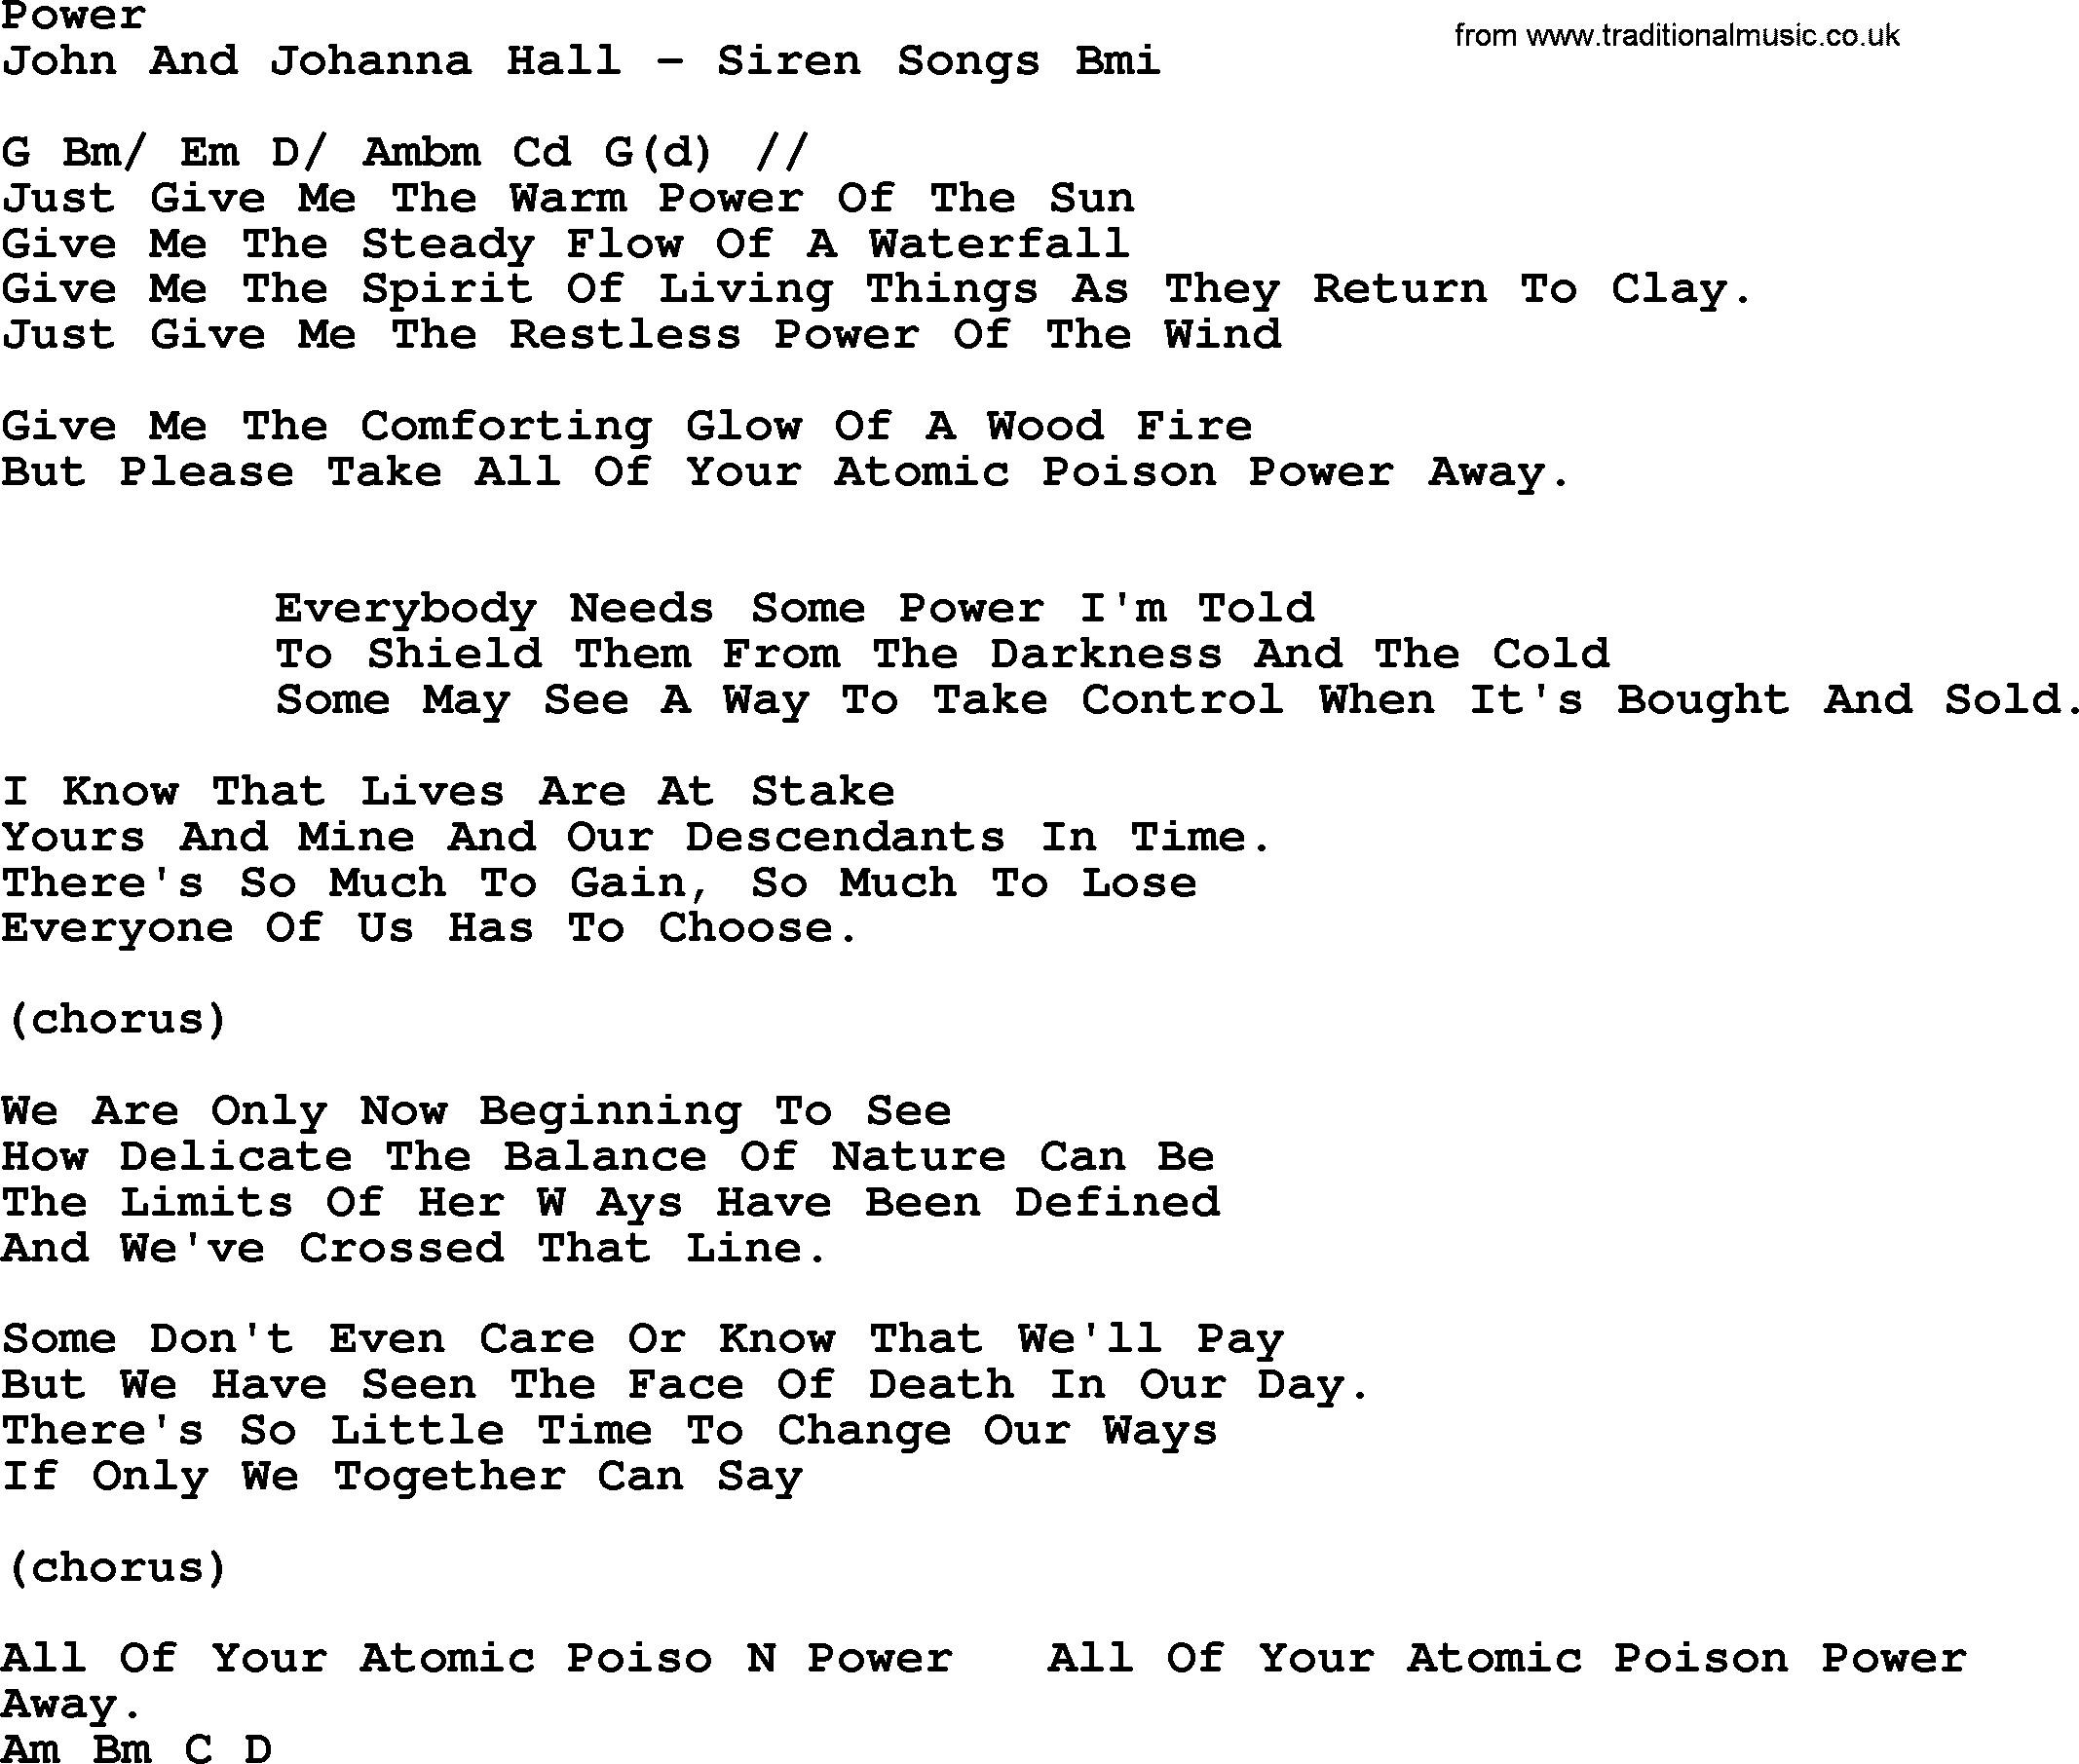 Peter paul and mary song power lyrics and chords peter paul and mary song power lyrics and chords hexwebz Gallery